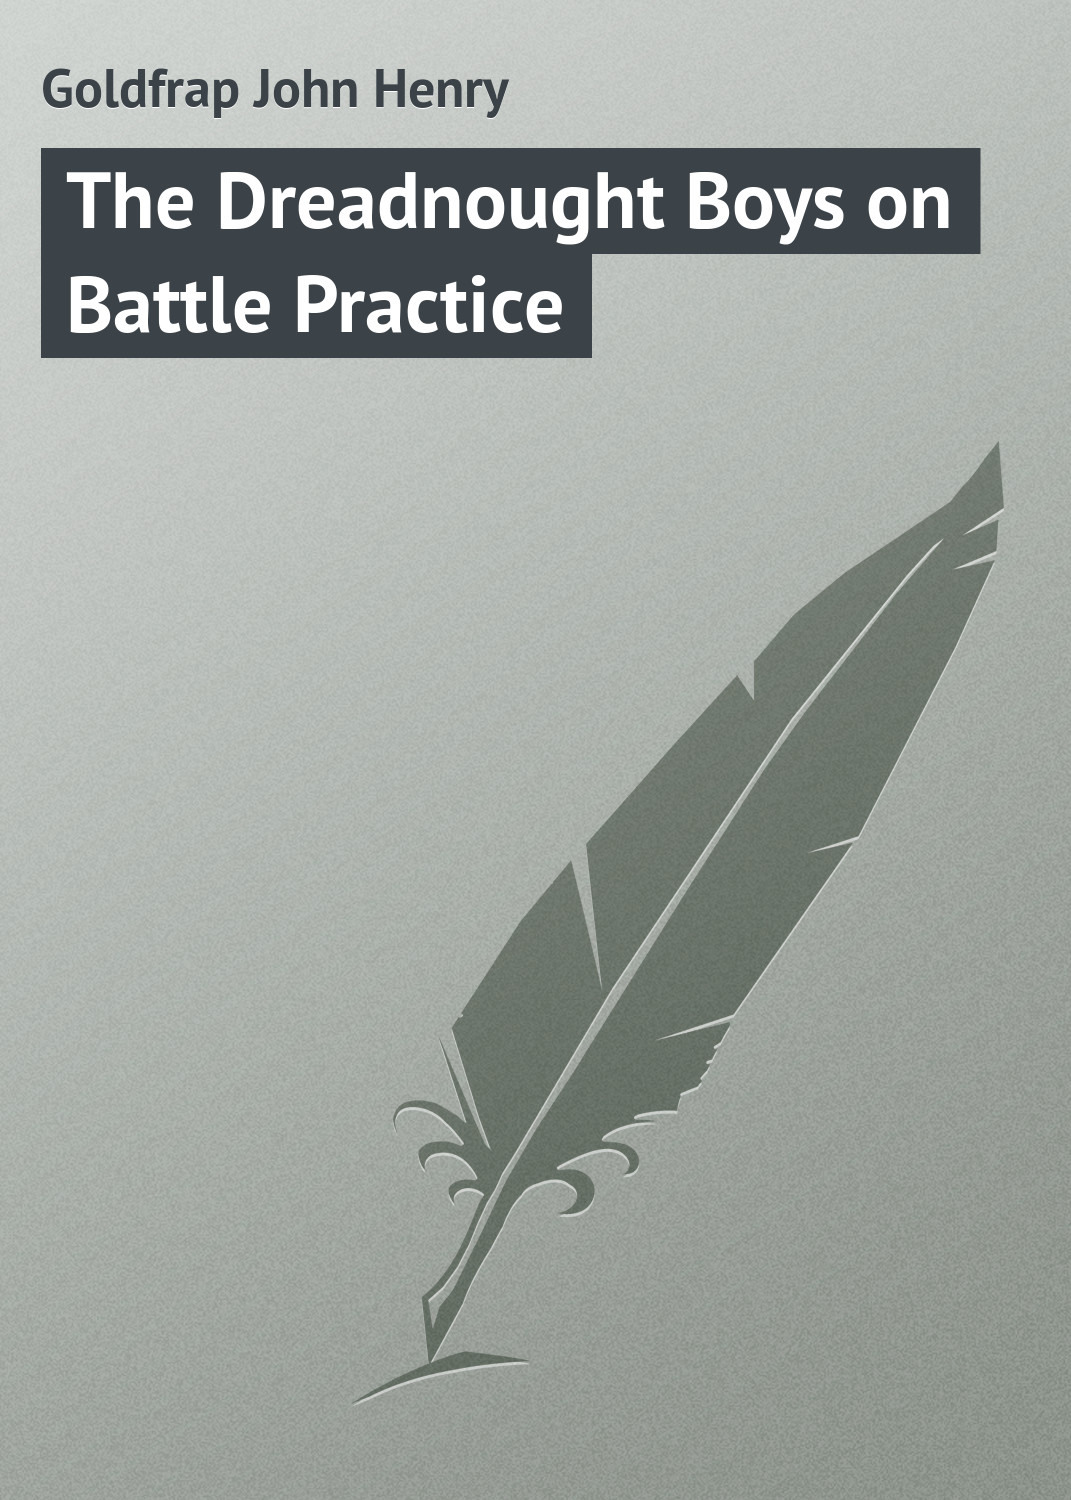 купить Goldfrap John Henry The Dreadnought Boys on Battle Practice по цене 0 рублей